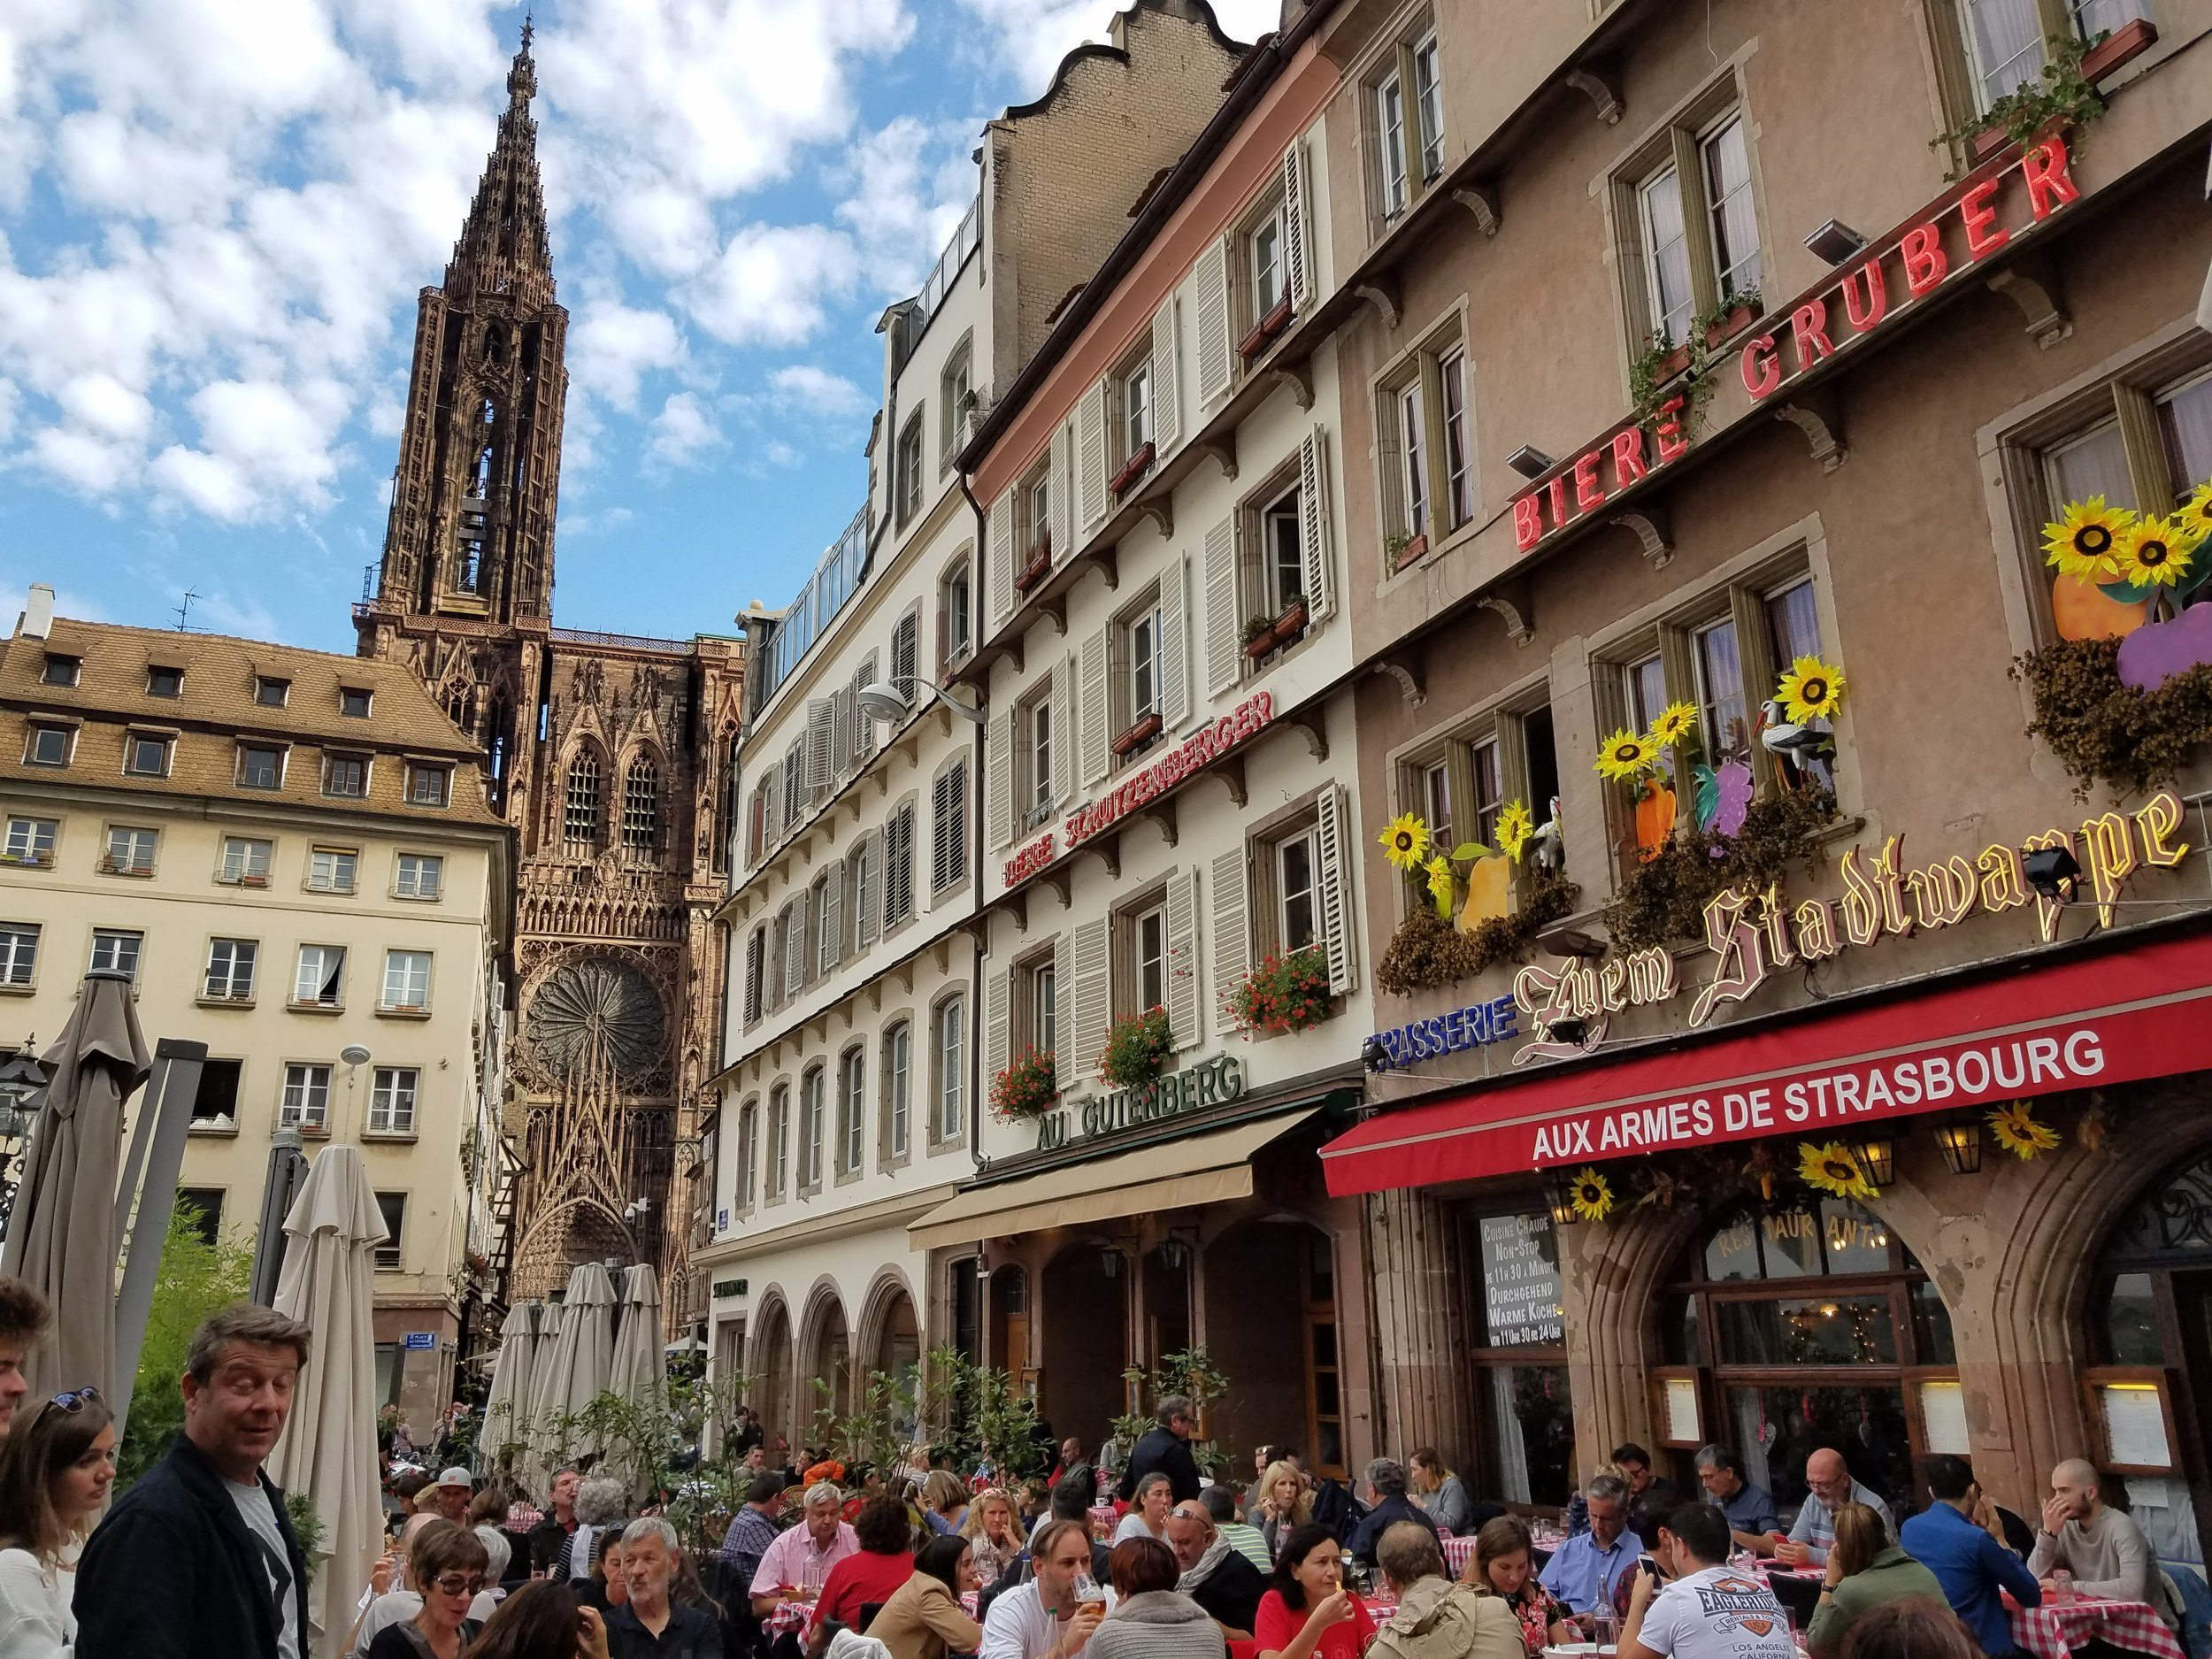 Free and self-guided Strasbourg walking tour, Alsace, Eastern France. Want to learn about the history of Strasbourg as well as see the top Strasbourg highlights and things to do? This guided walk will show you the top city things to do in Alsace, France